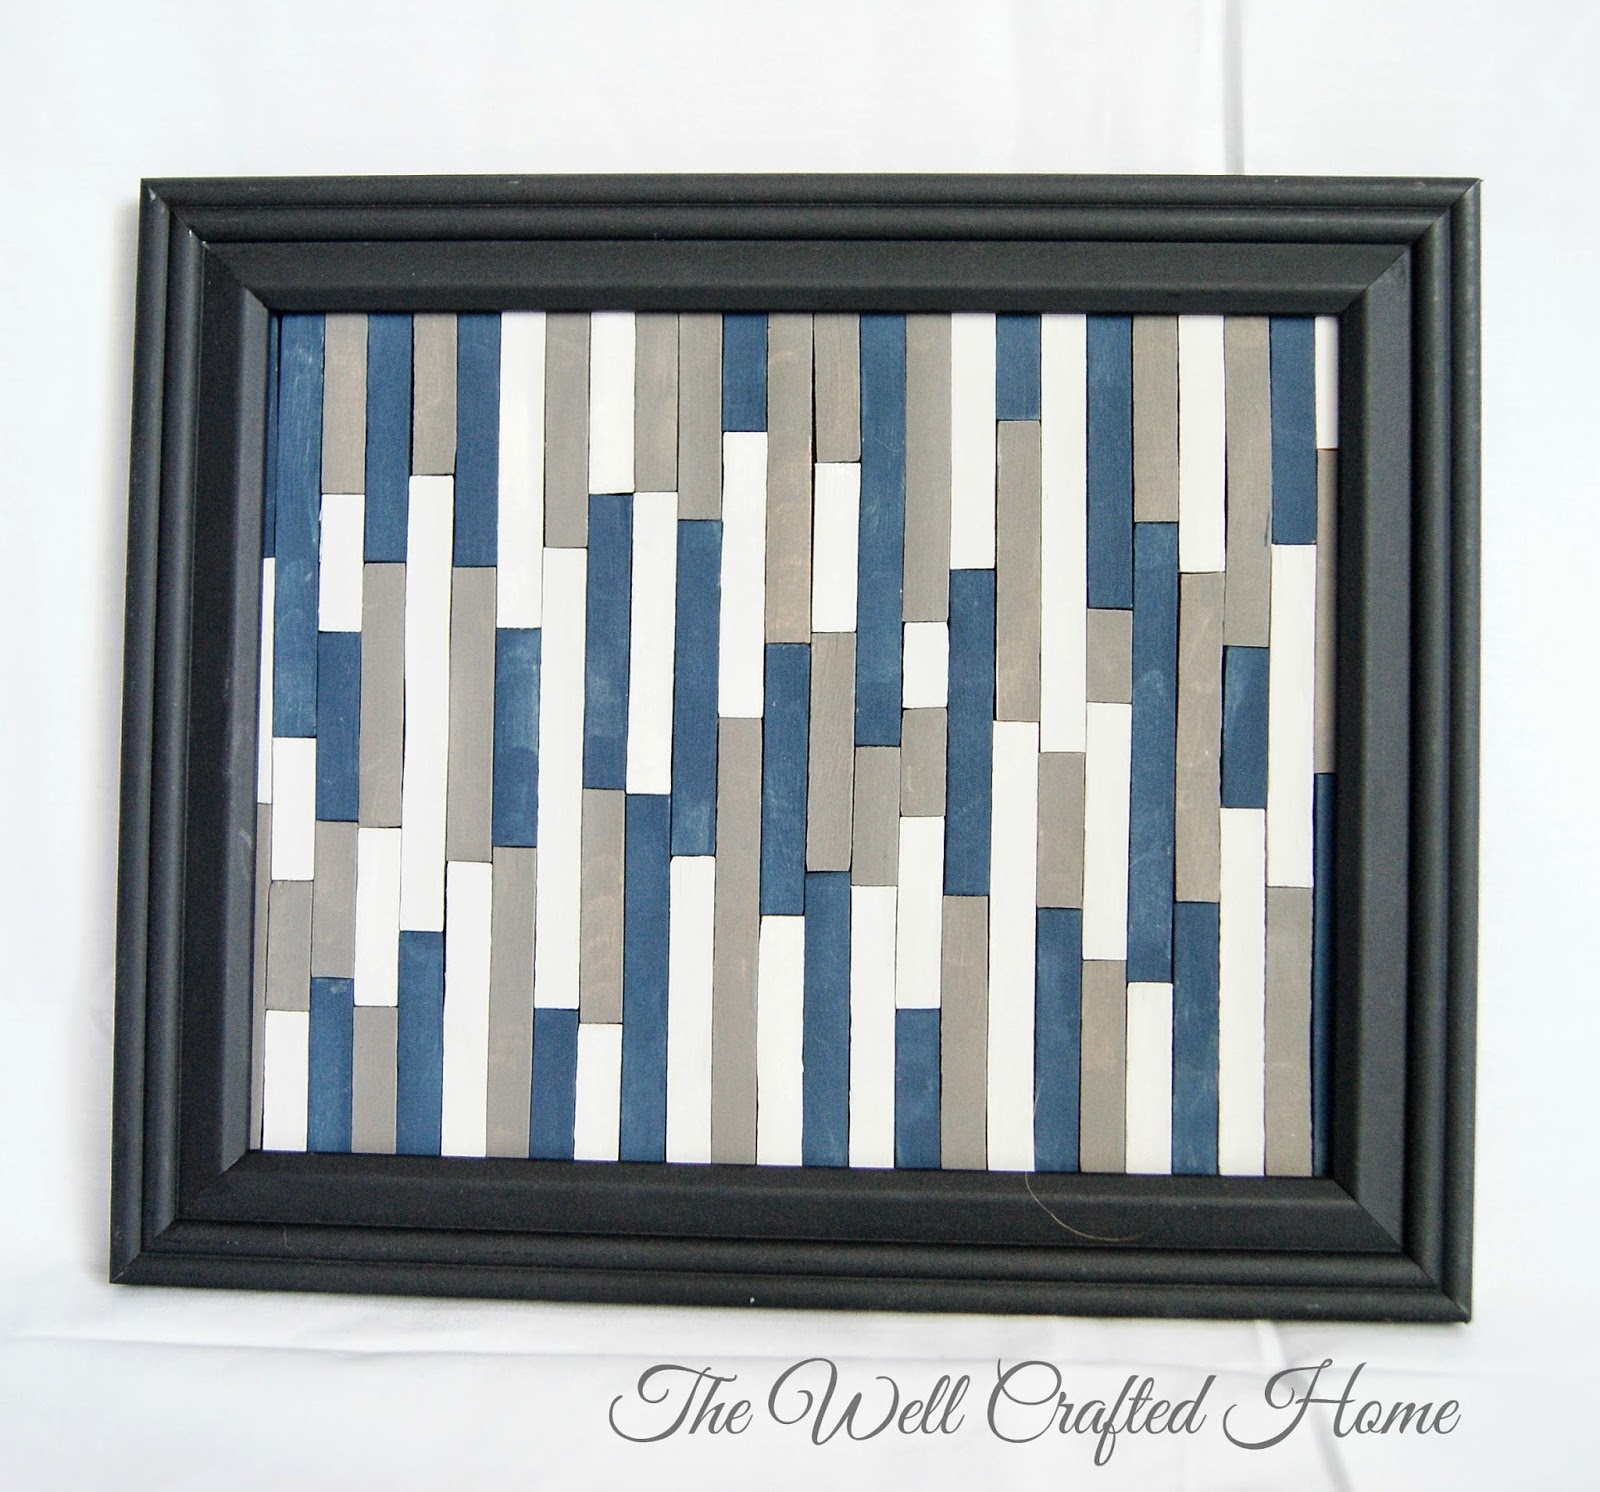 The well crafted home made by me mondays 5 popsicle stick art i chose to leave the glass our of the frame it looked good both ways though here is the finished product jeuxipadfo Gallery